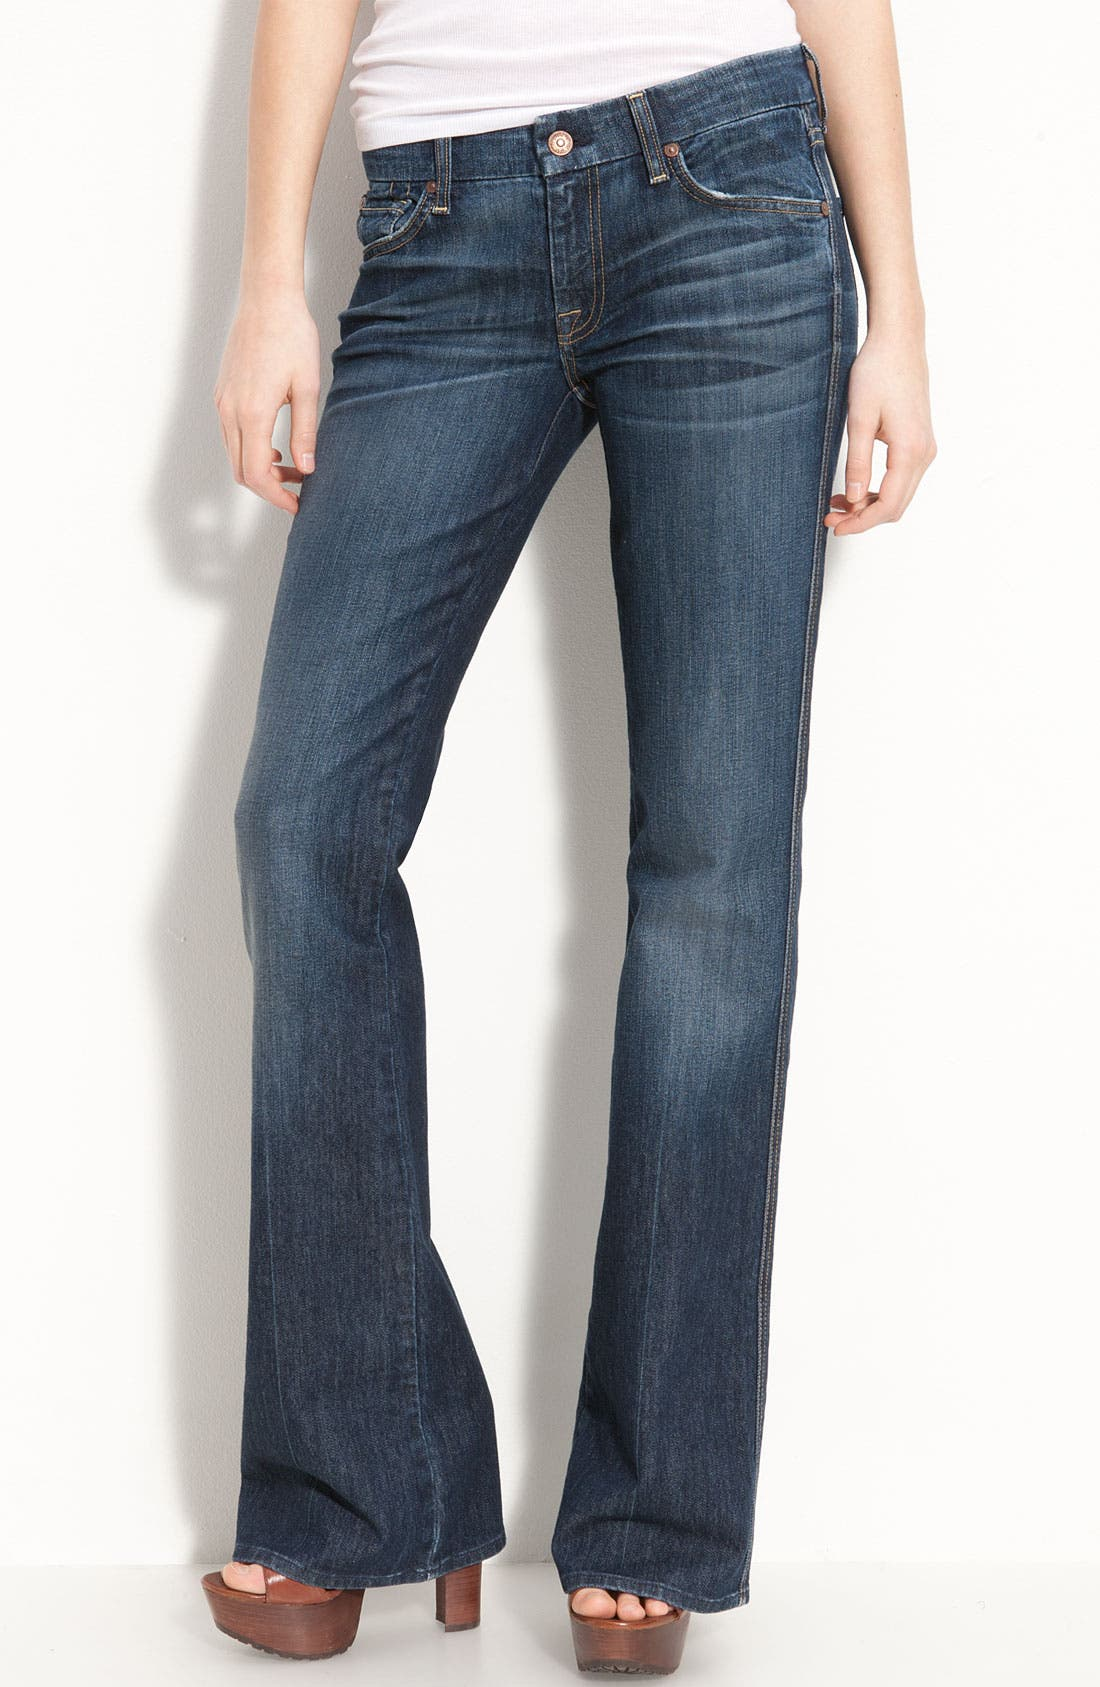 Main Image - 7 For All Mankind® Stretch Denim Bootcut Jeans (Nouveau New York) (Petite)